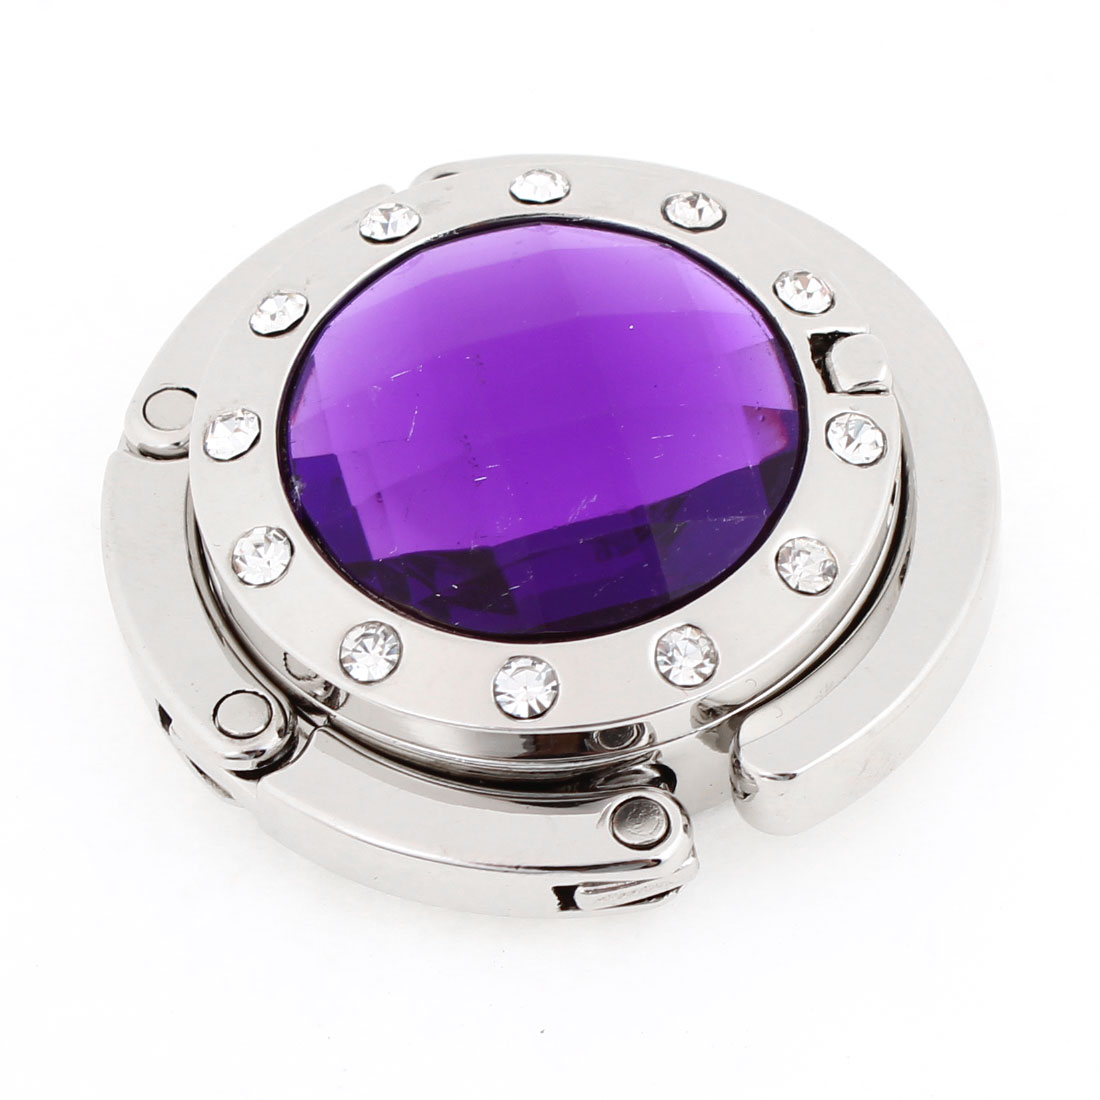 Ladies Purple Plastic Crystal Detailing Rubber Base Handbag Hook Holder w Mirror